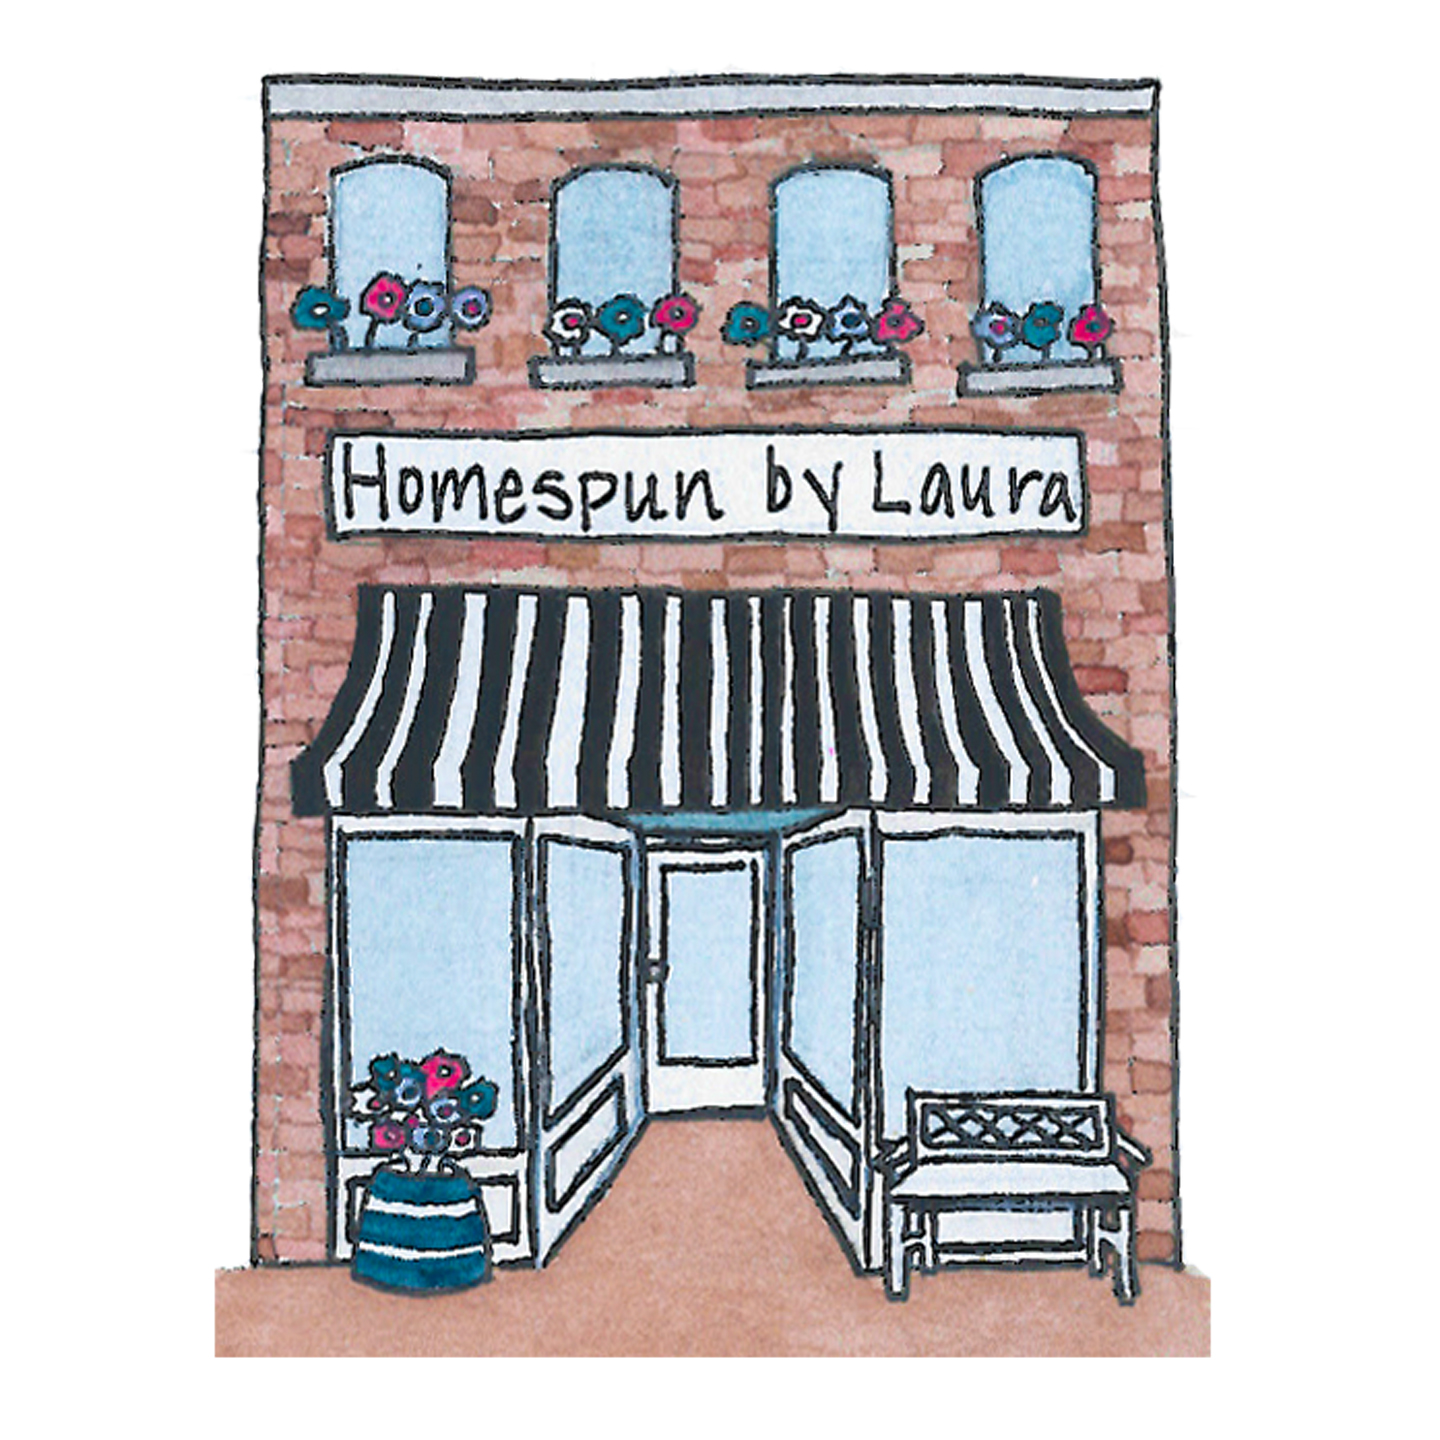 Homespun by Laura on Etsy